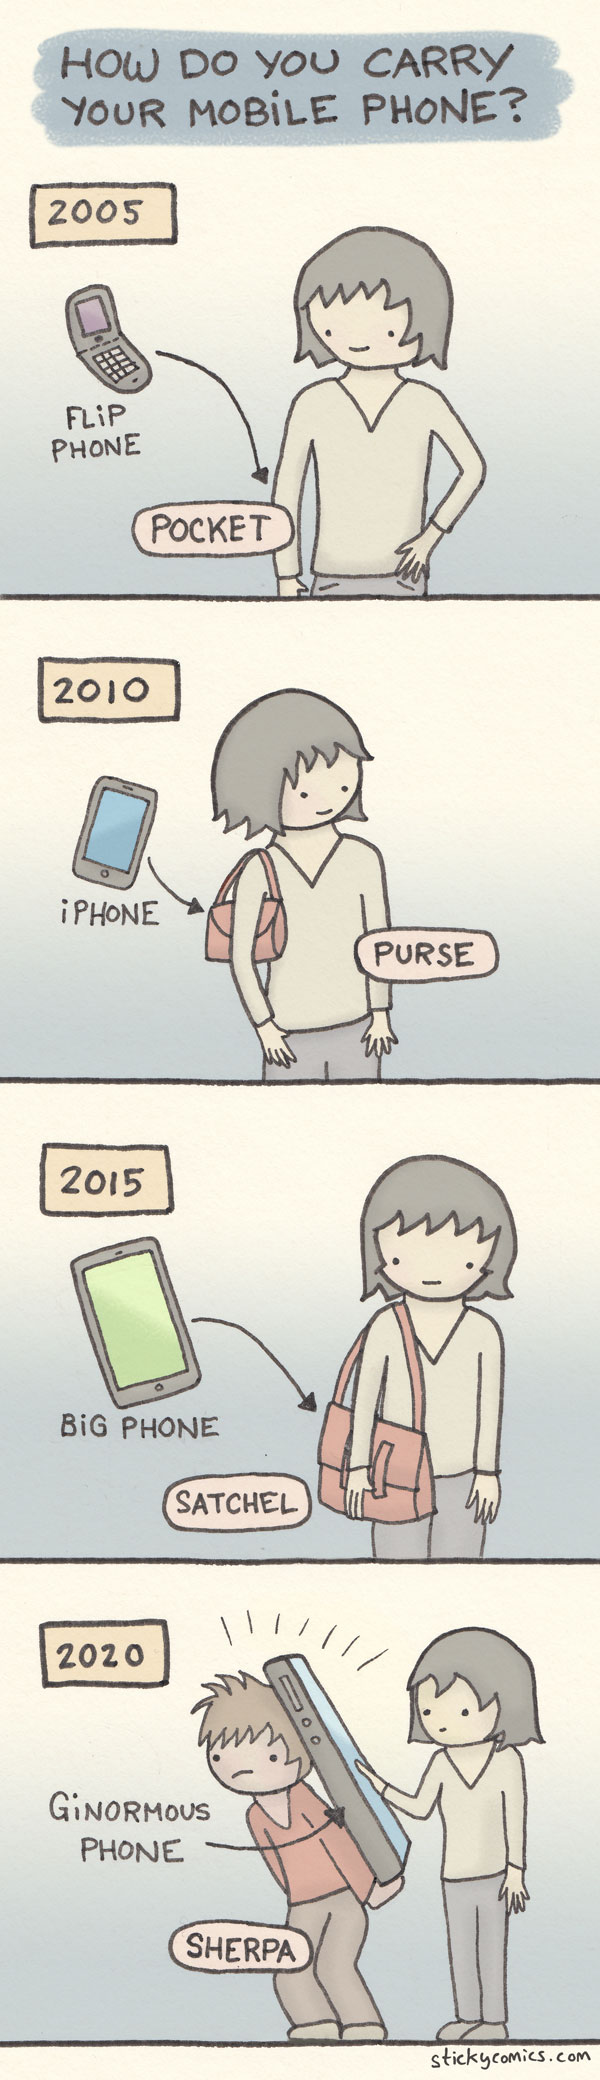 How do you care your mobile phone